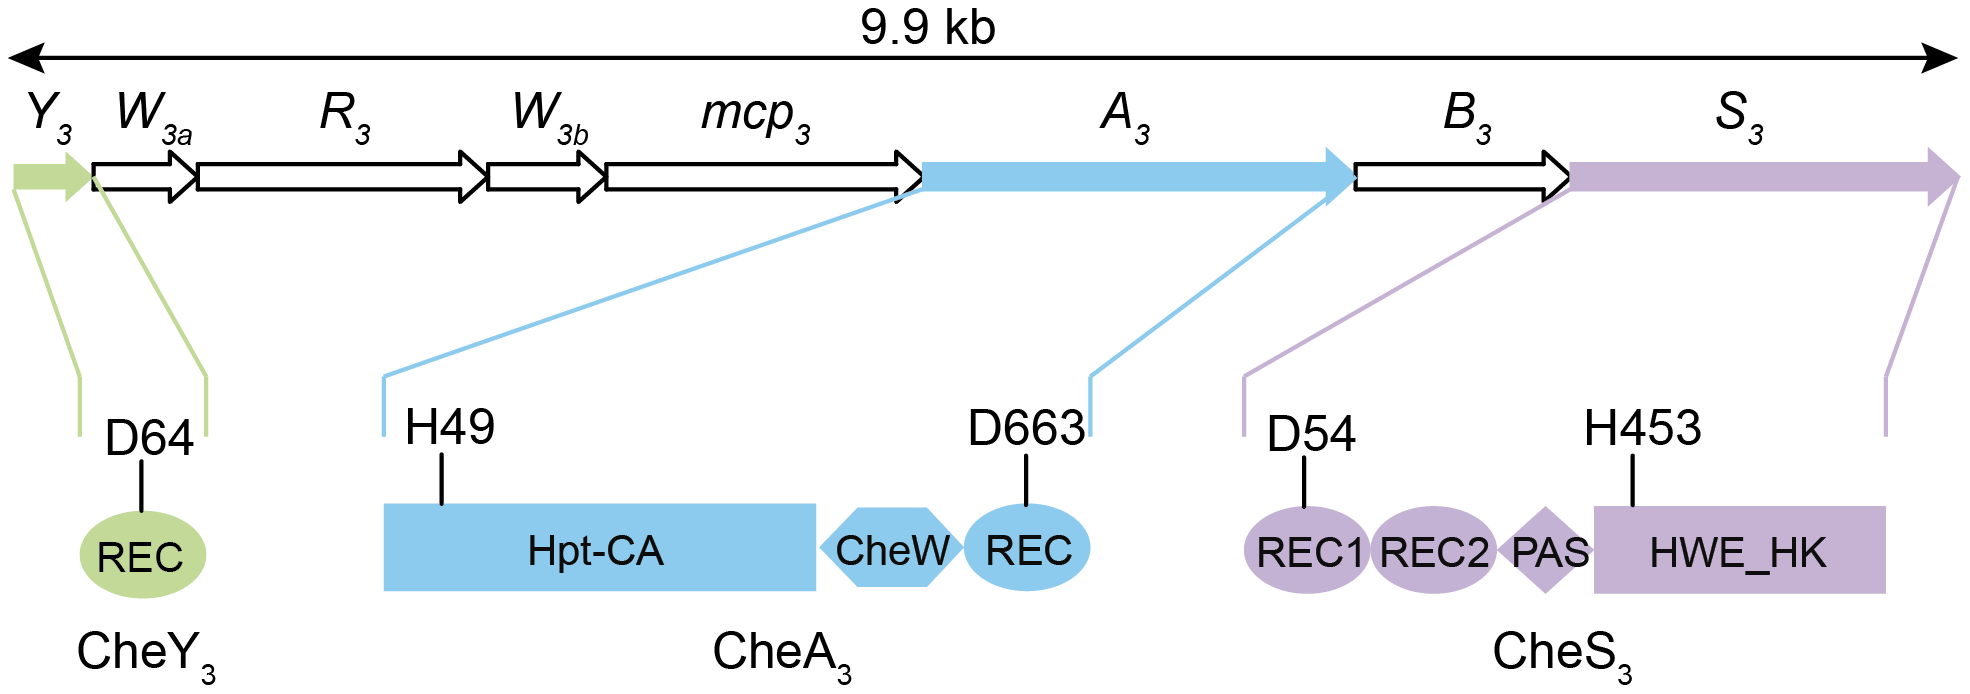 Gene arrangement of the <i>R. centenum che<sub>3</sub></i> cluster and domain organizations of CheA<sub>3</sub>, CheS<sub>3</sub>, and CheY<sub>3</sub>.